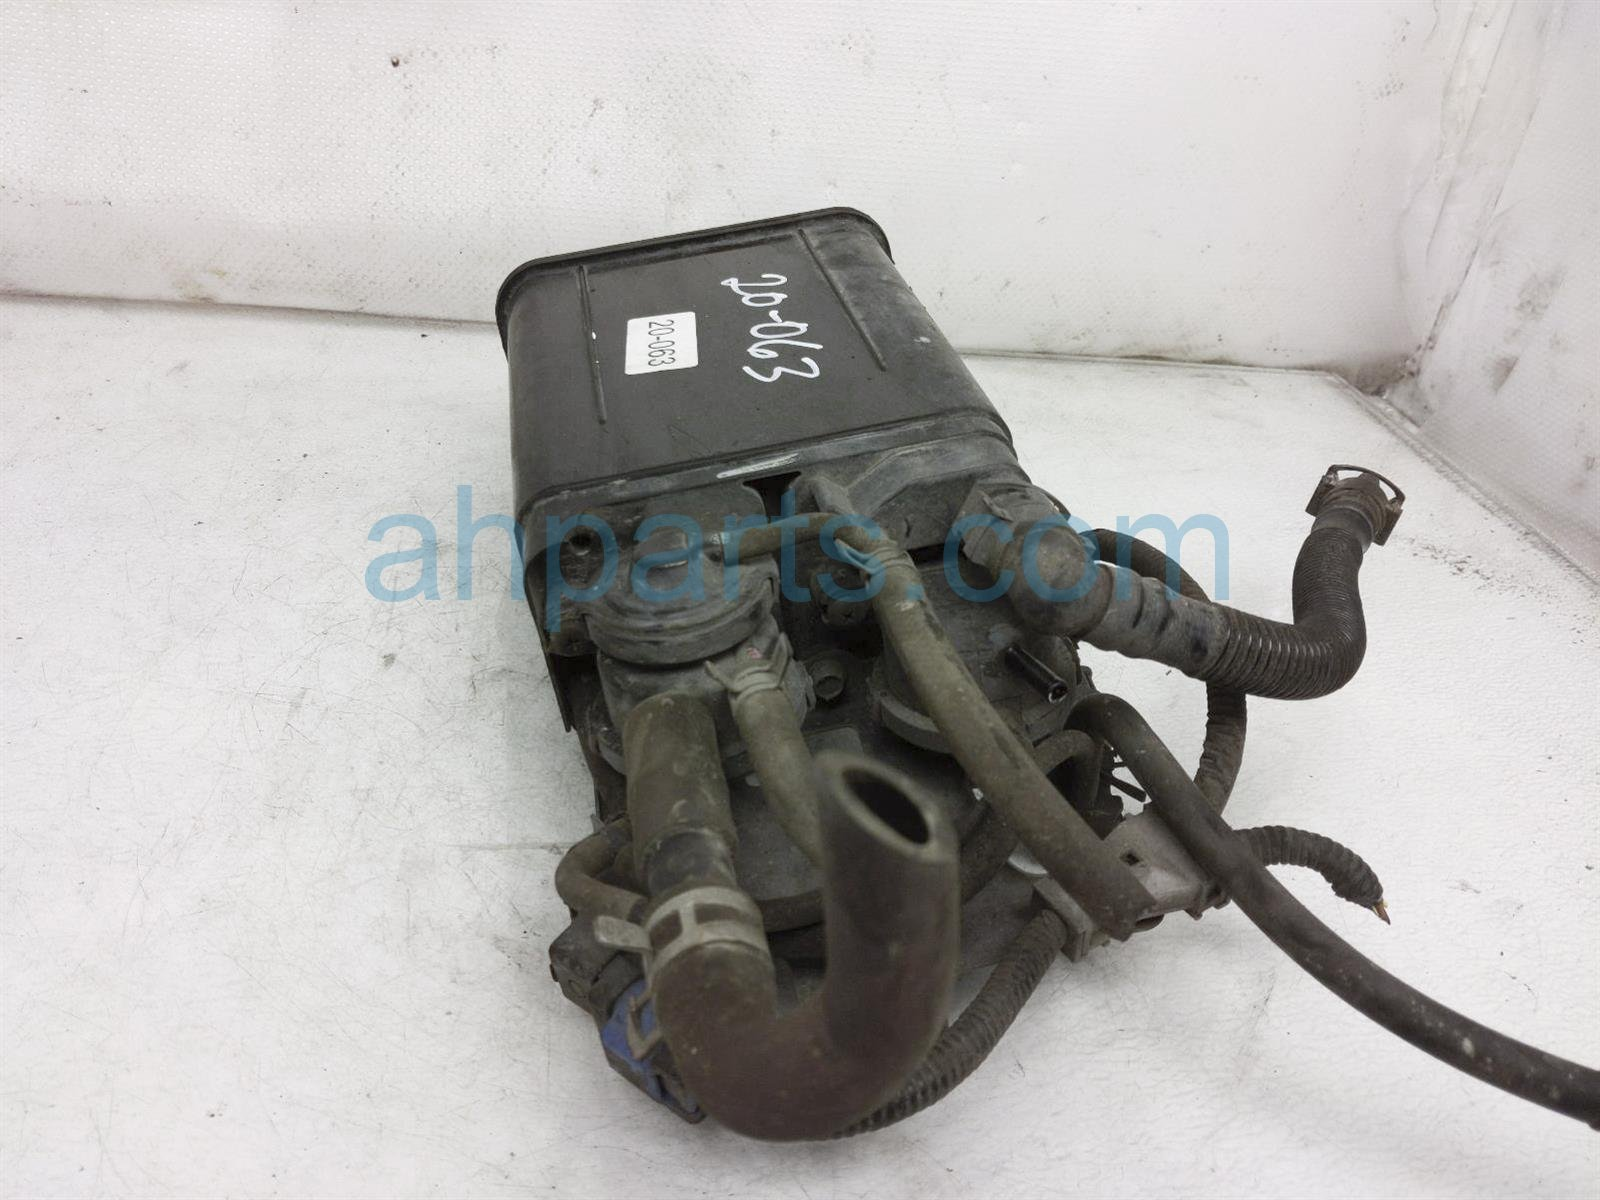 2001 Toyota Camry Fuel Vapor Canister 77740 06170 Replacement